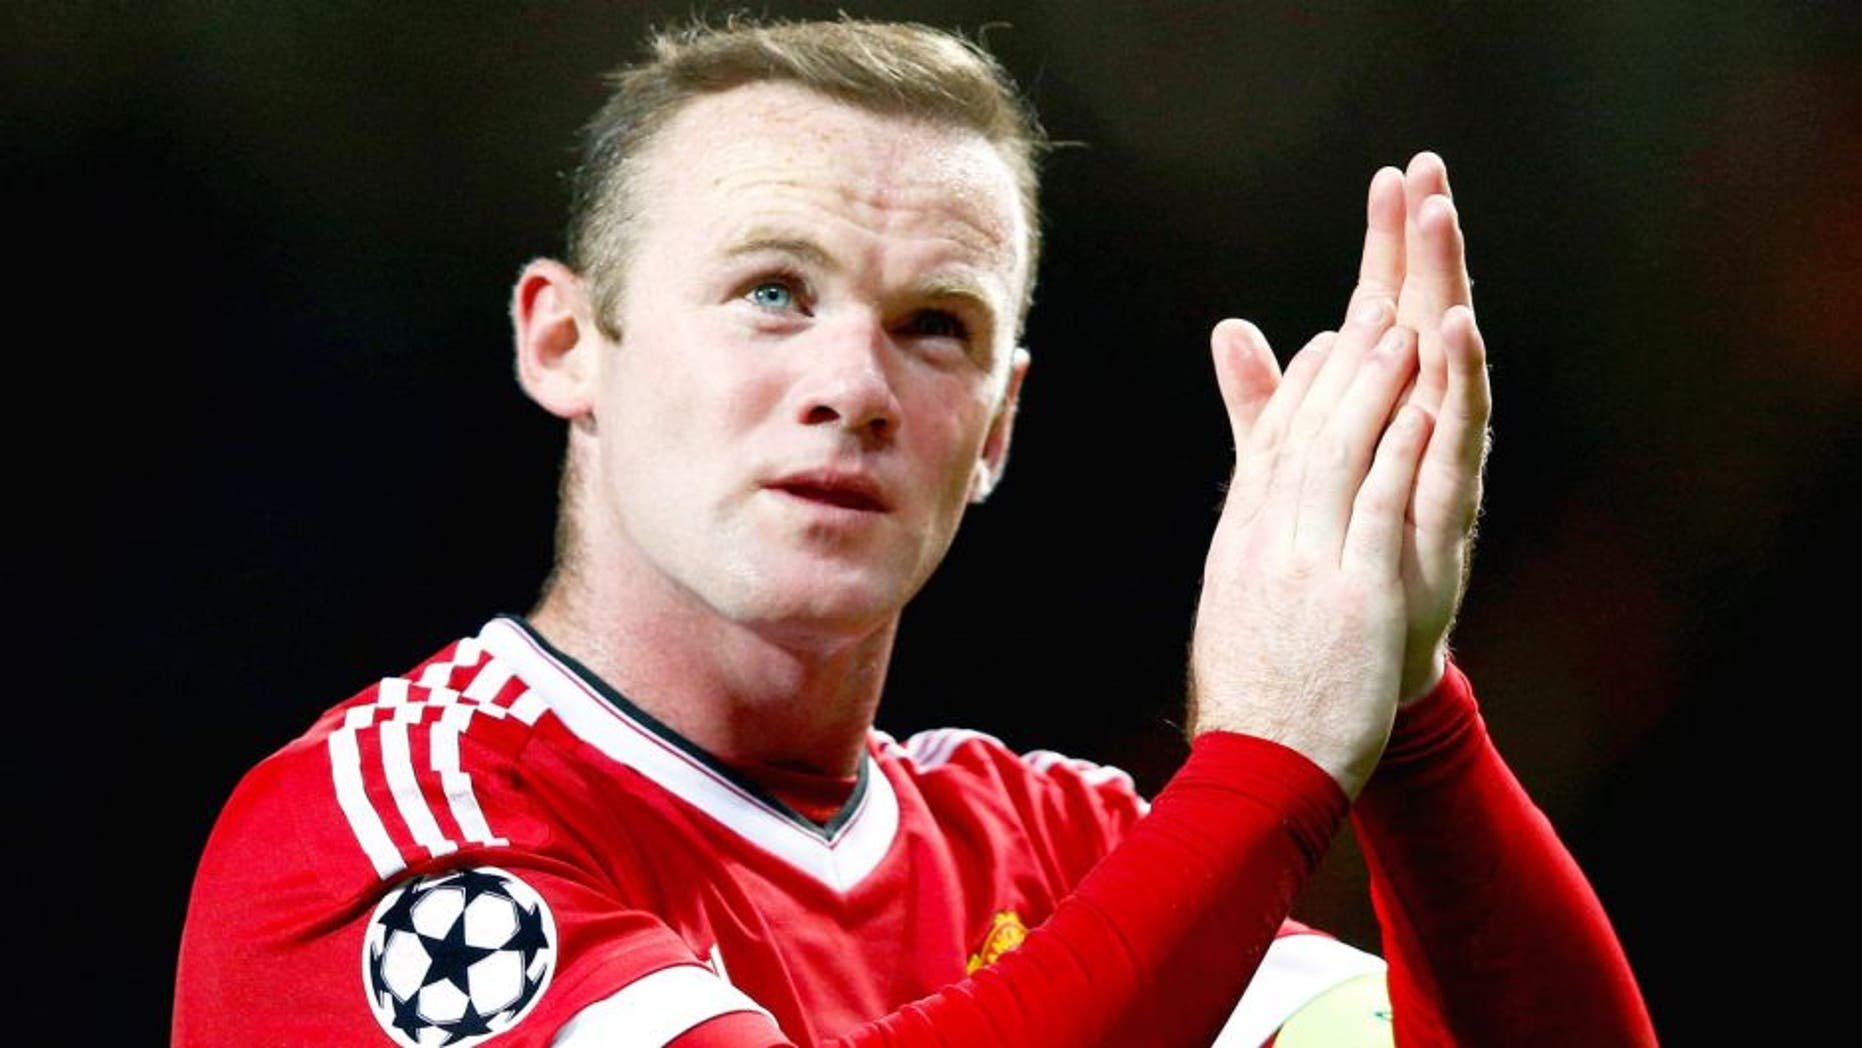 MANCHESTER, ENGLAND - SEPTEMBER 30: Wayne Rooney of Manchester United applauds the crowd after victory in the UEFA Champions League Group B match between Manchester United FC and VfL Wolfsburg at Old Trafford on September 30, 2015 in Manchester, United Kingdom. (Photo by Dean Mouhtaropoulos/Getty Images)